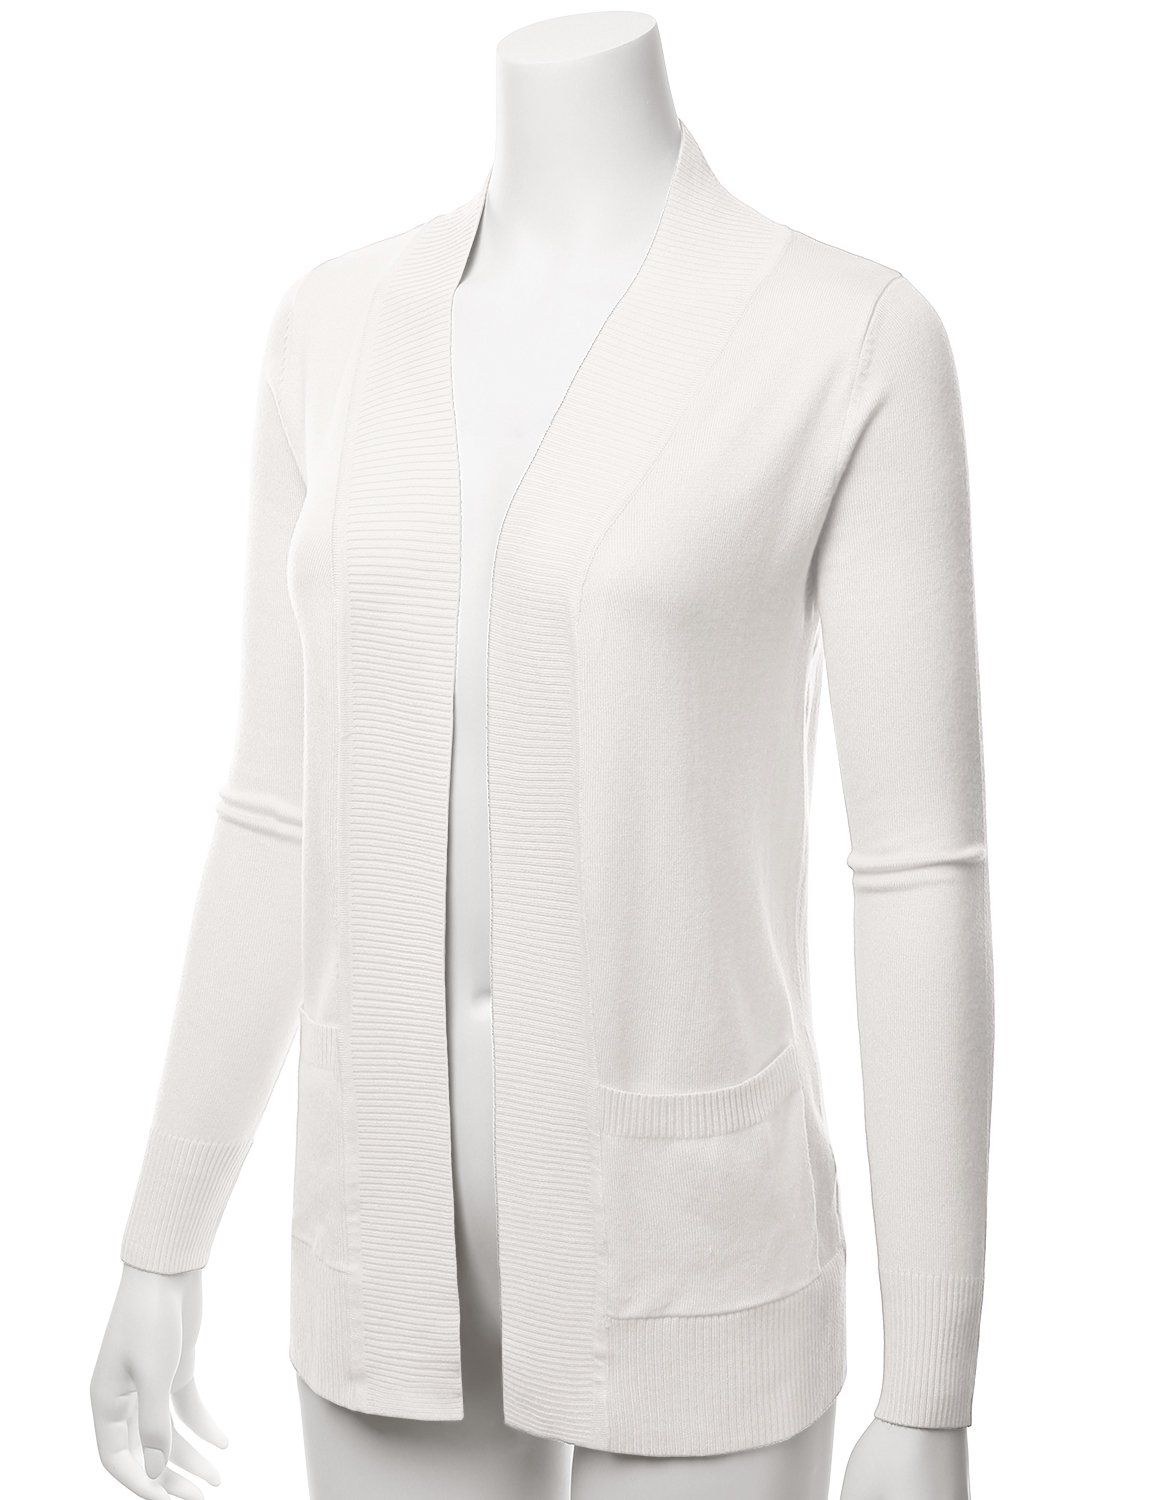 LALABEE Women's Open Front Pockets Knit Long Sleeve Sweater Cardigan-Ivory-L by LALABEE (Image #2)